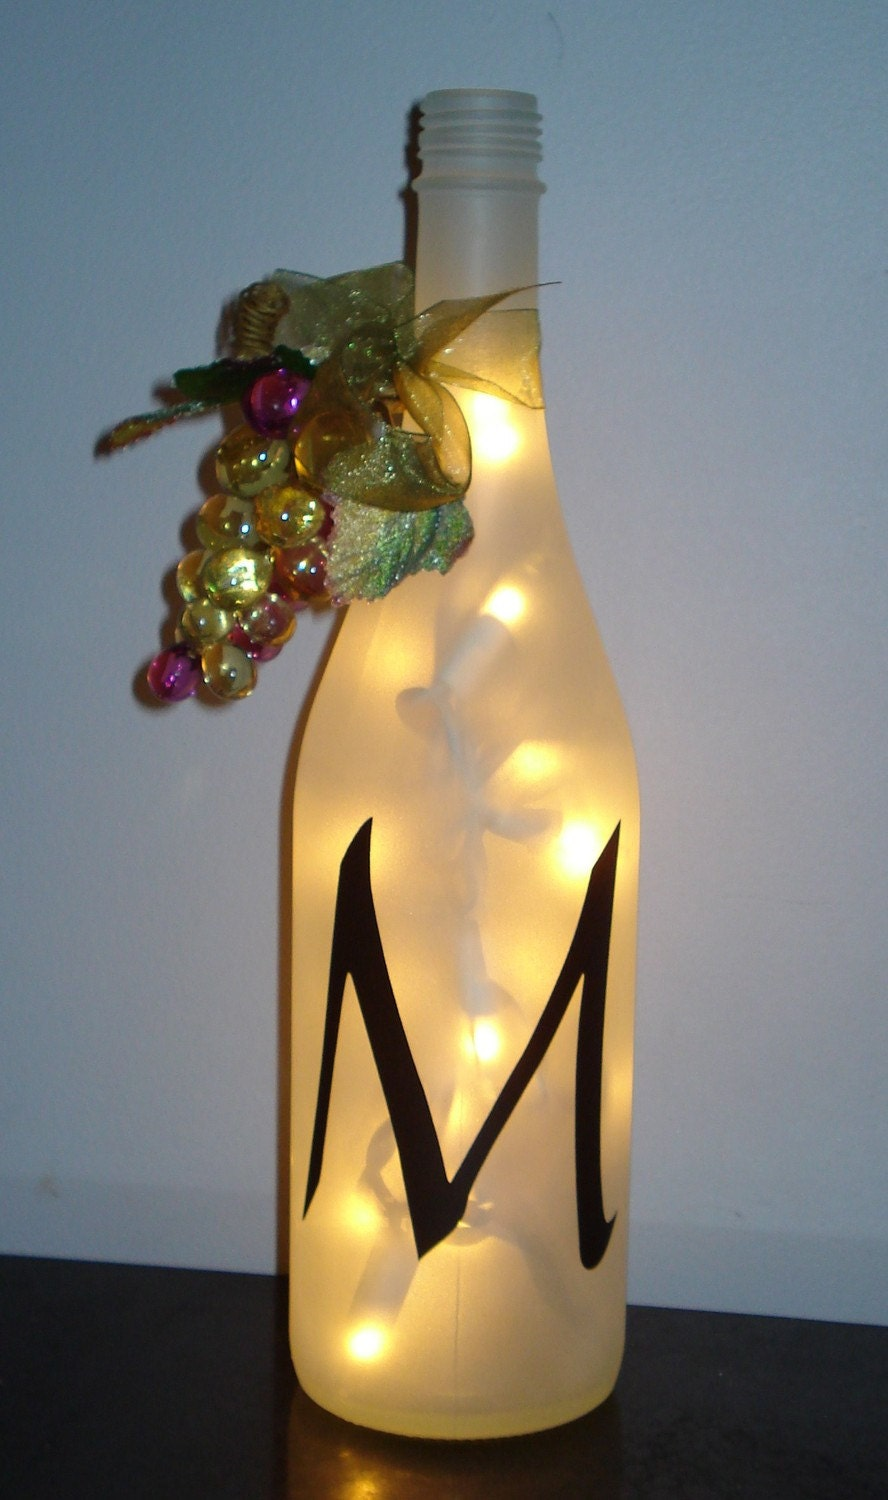 Personalized initial white wine bottle decor light for Wine bottle decoration with lights